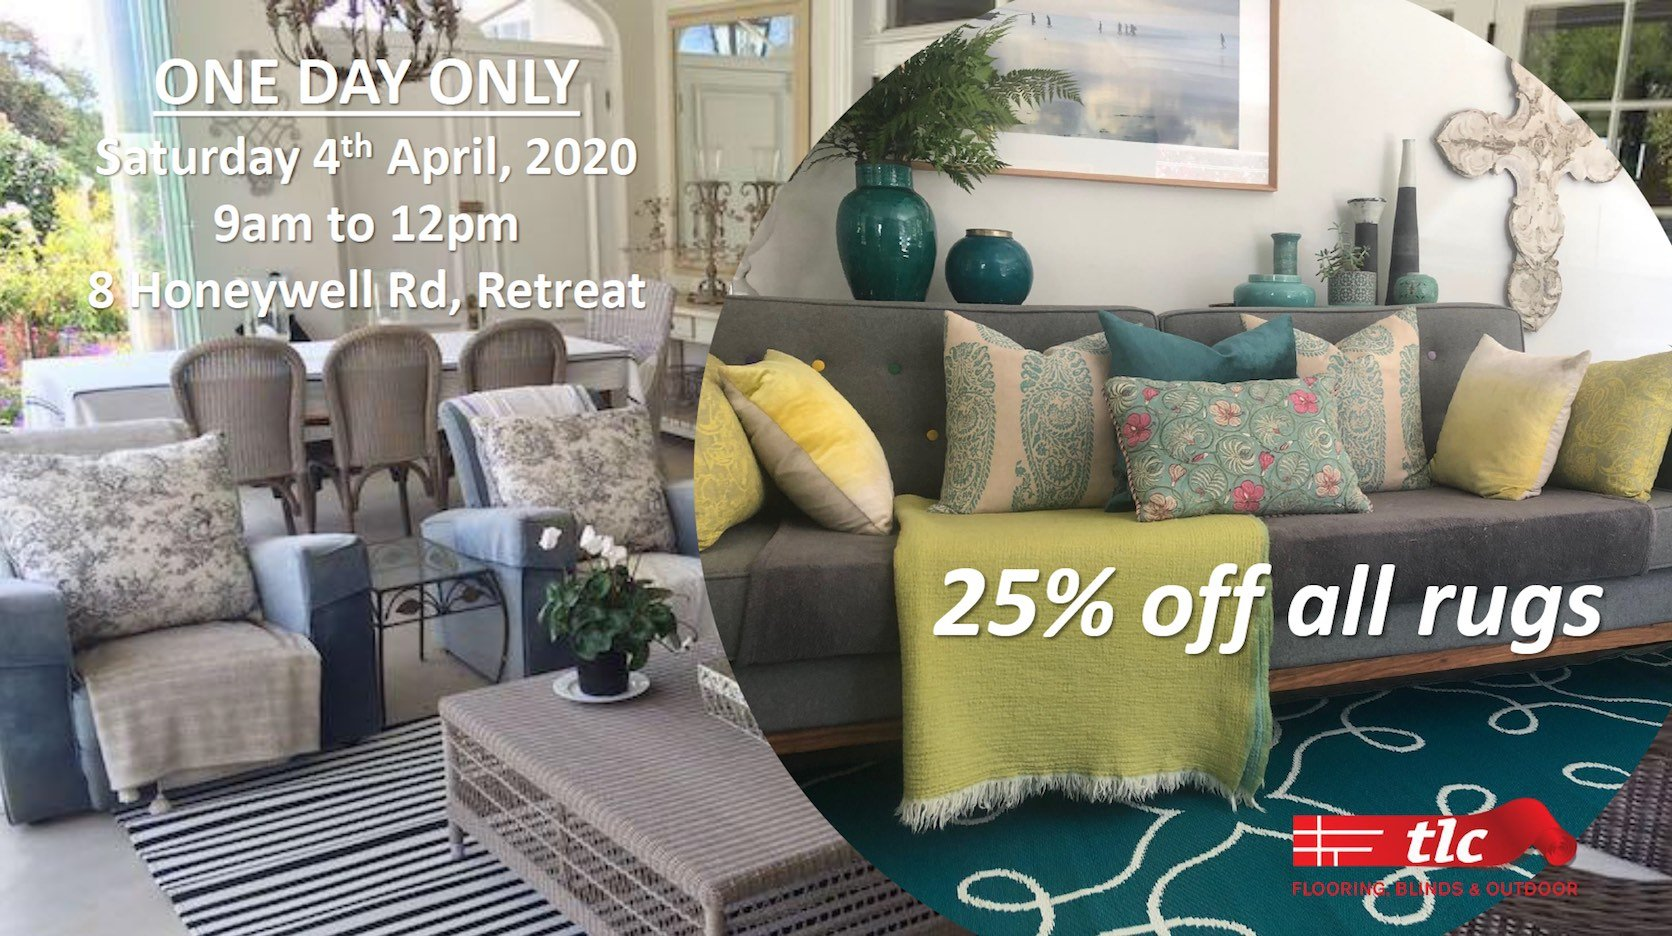 tlc flooring one day sale flash sale rugs